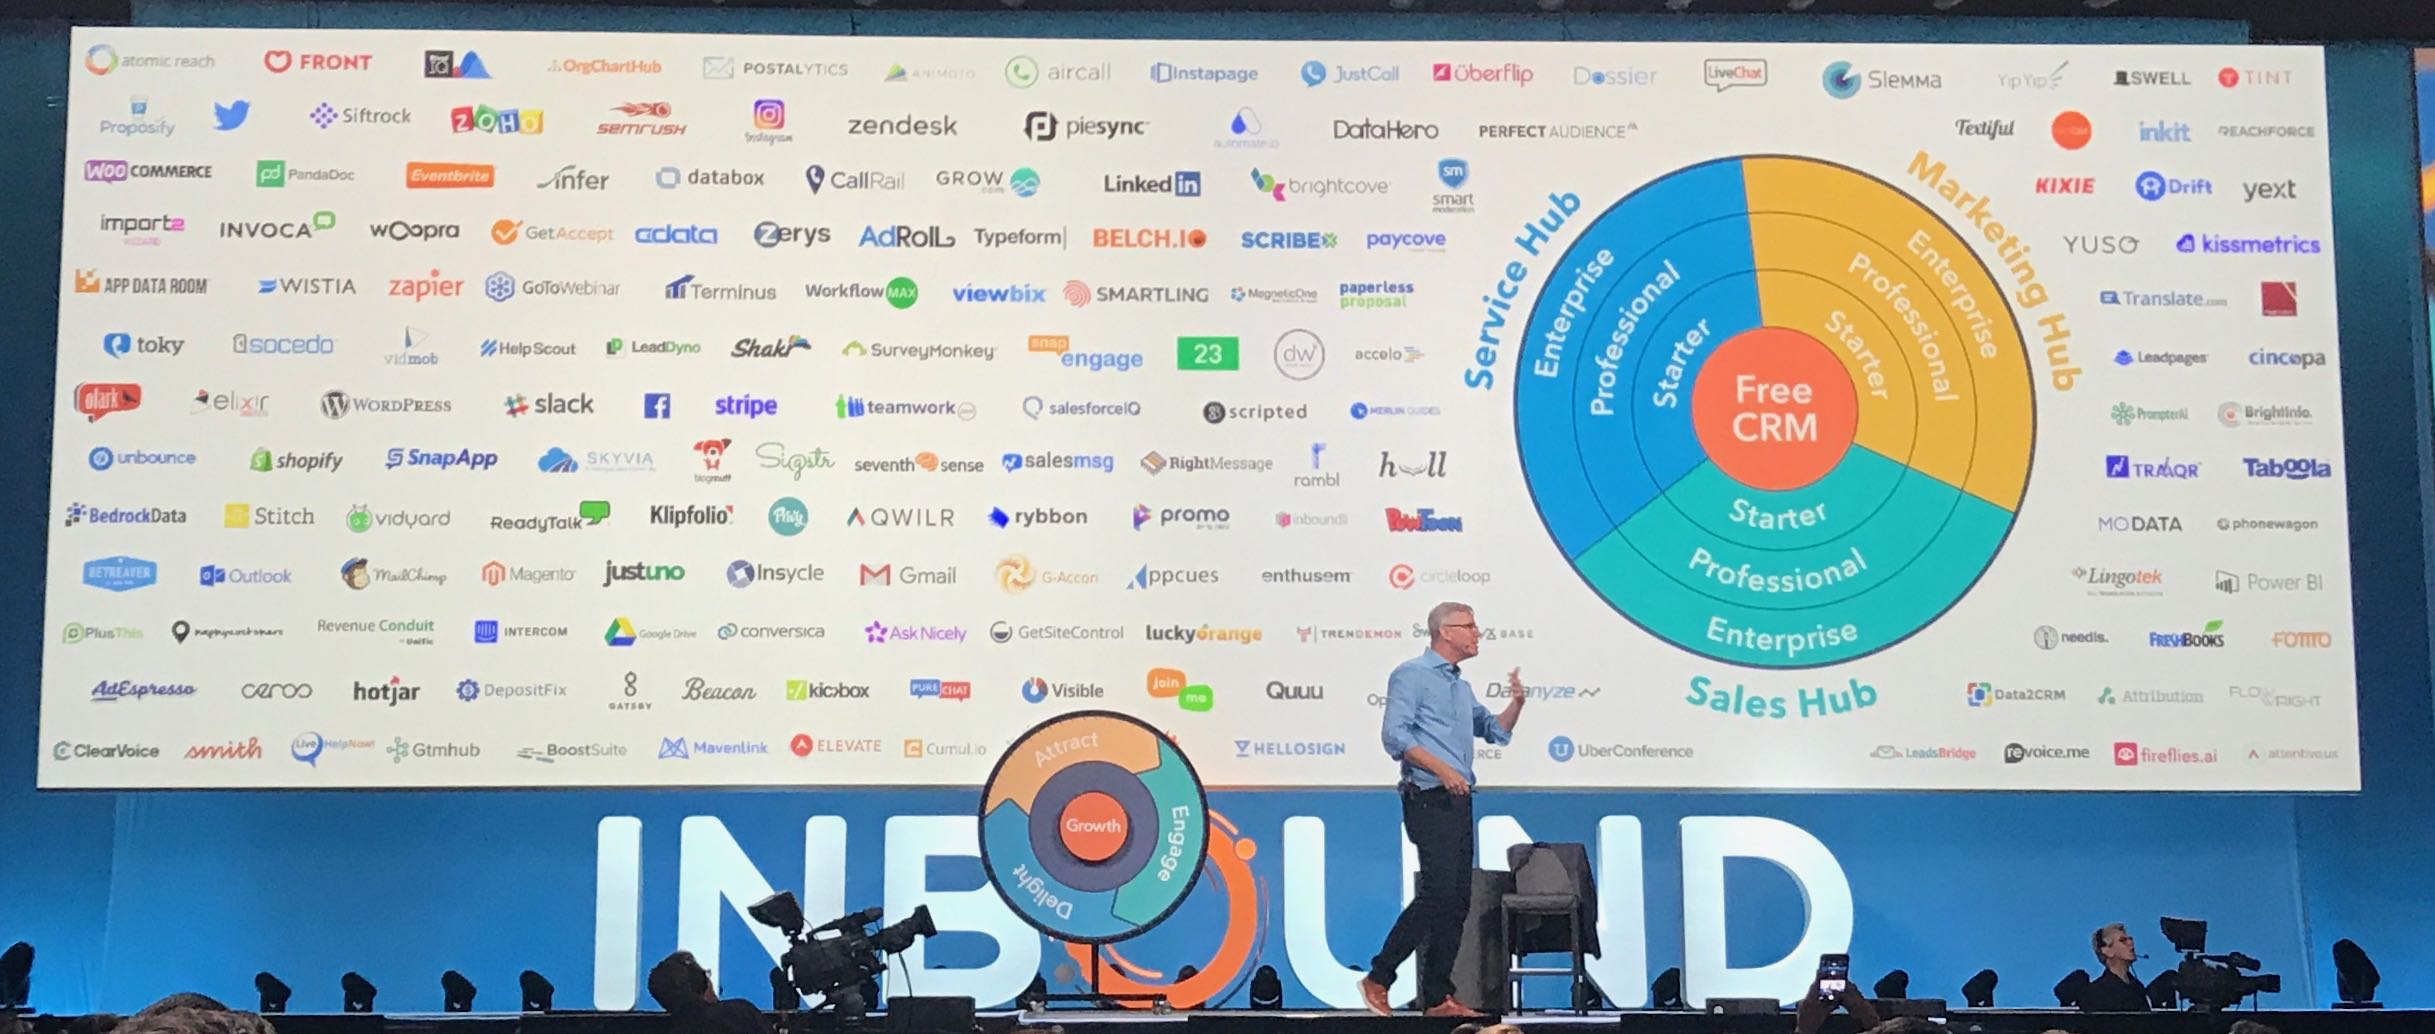 HubSpot integrations | inbound18